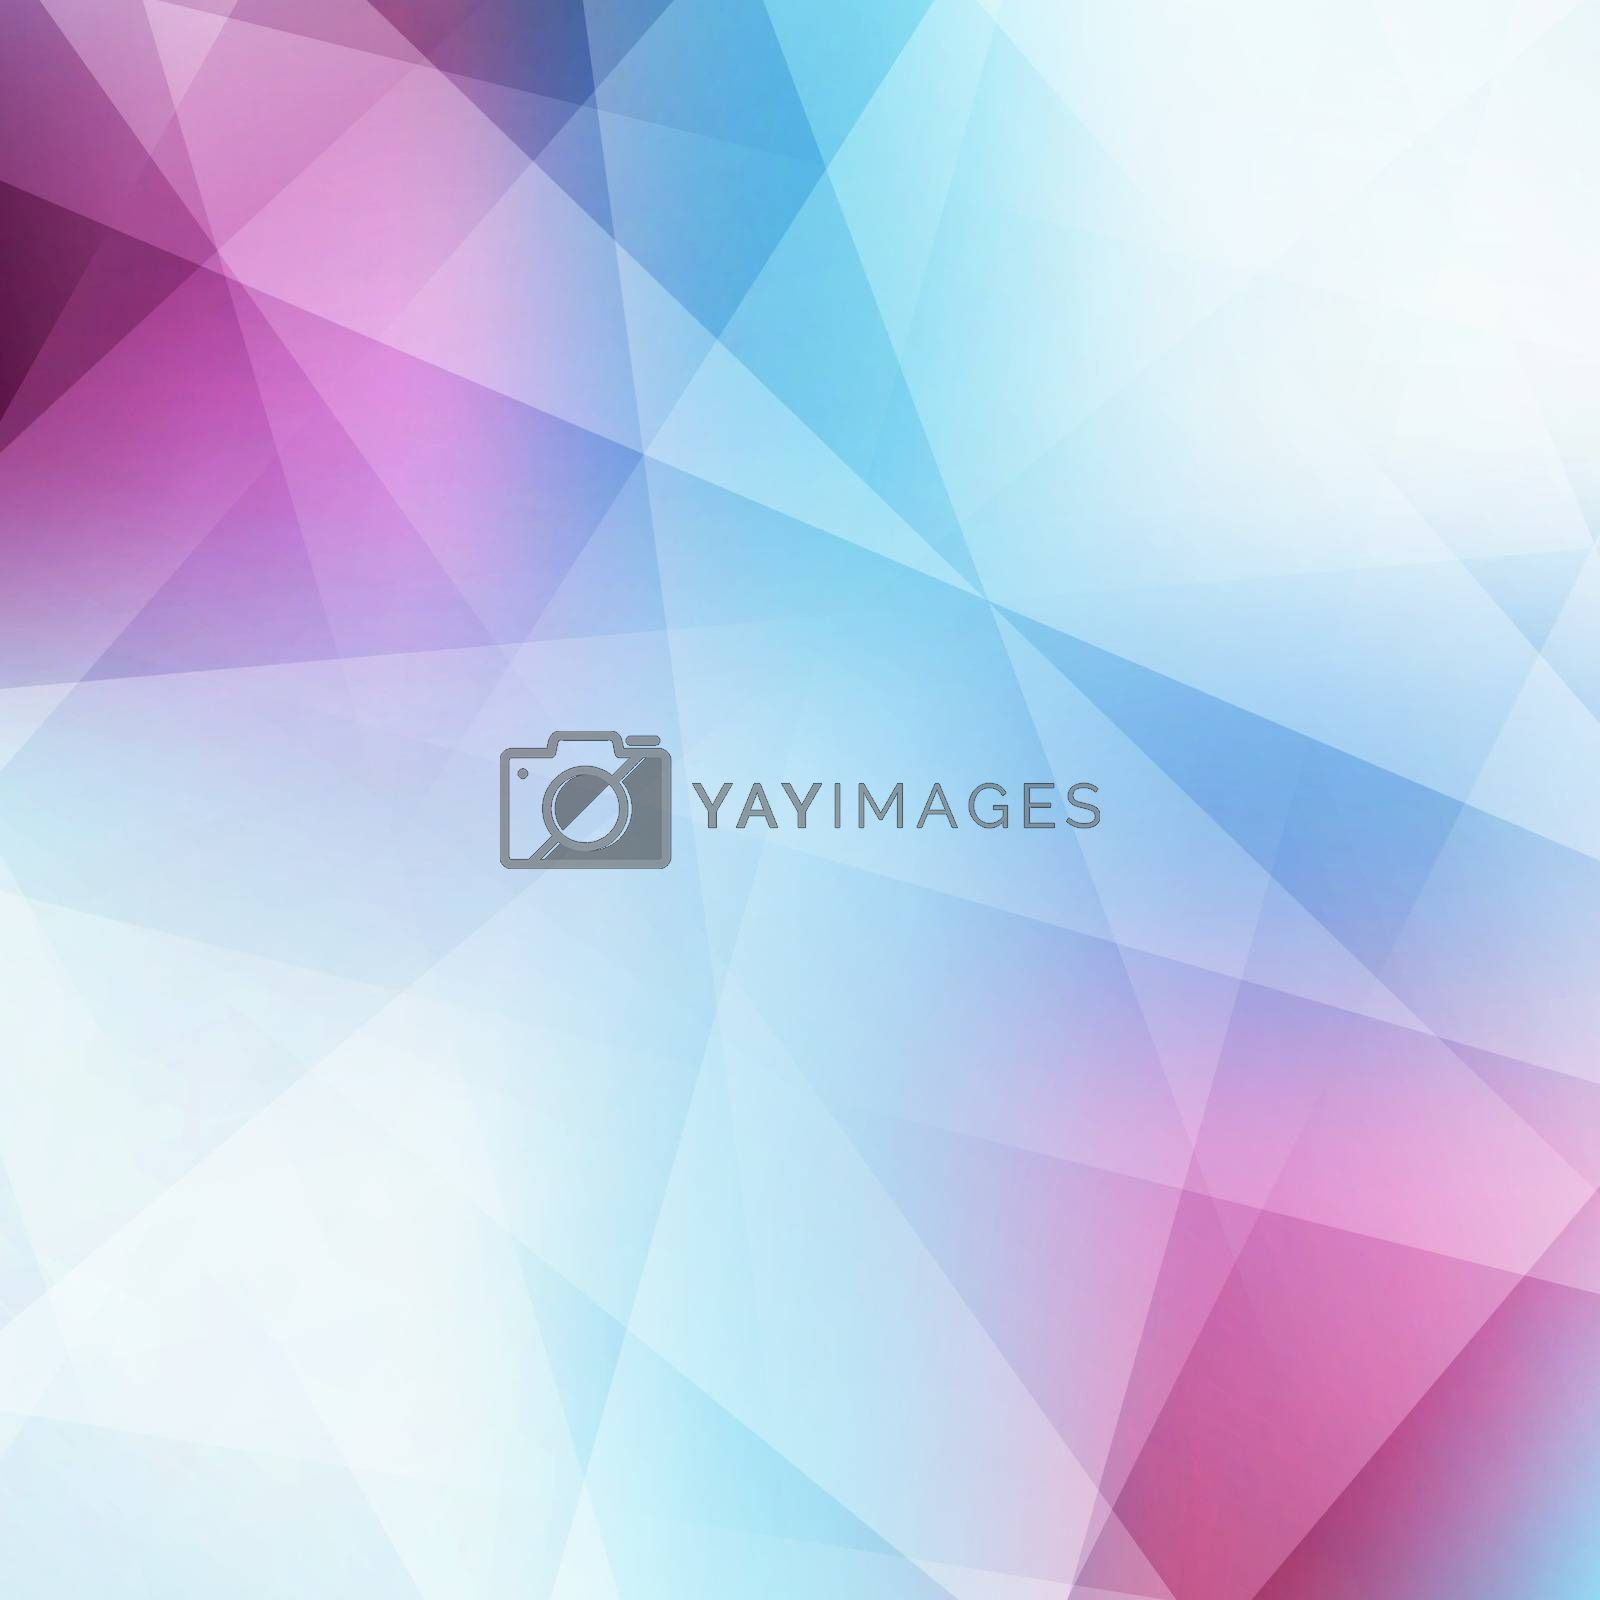 Blurred background. Modern pattern. Abstract vector illustration. Can be used for your website or presentation.